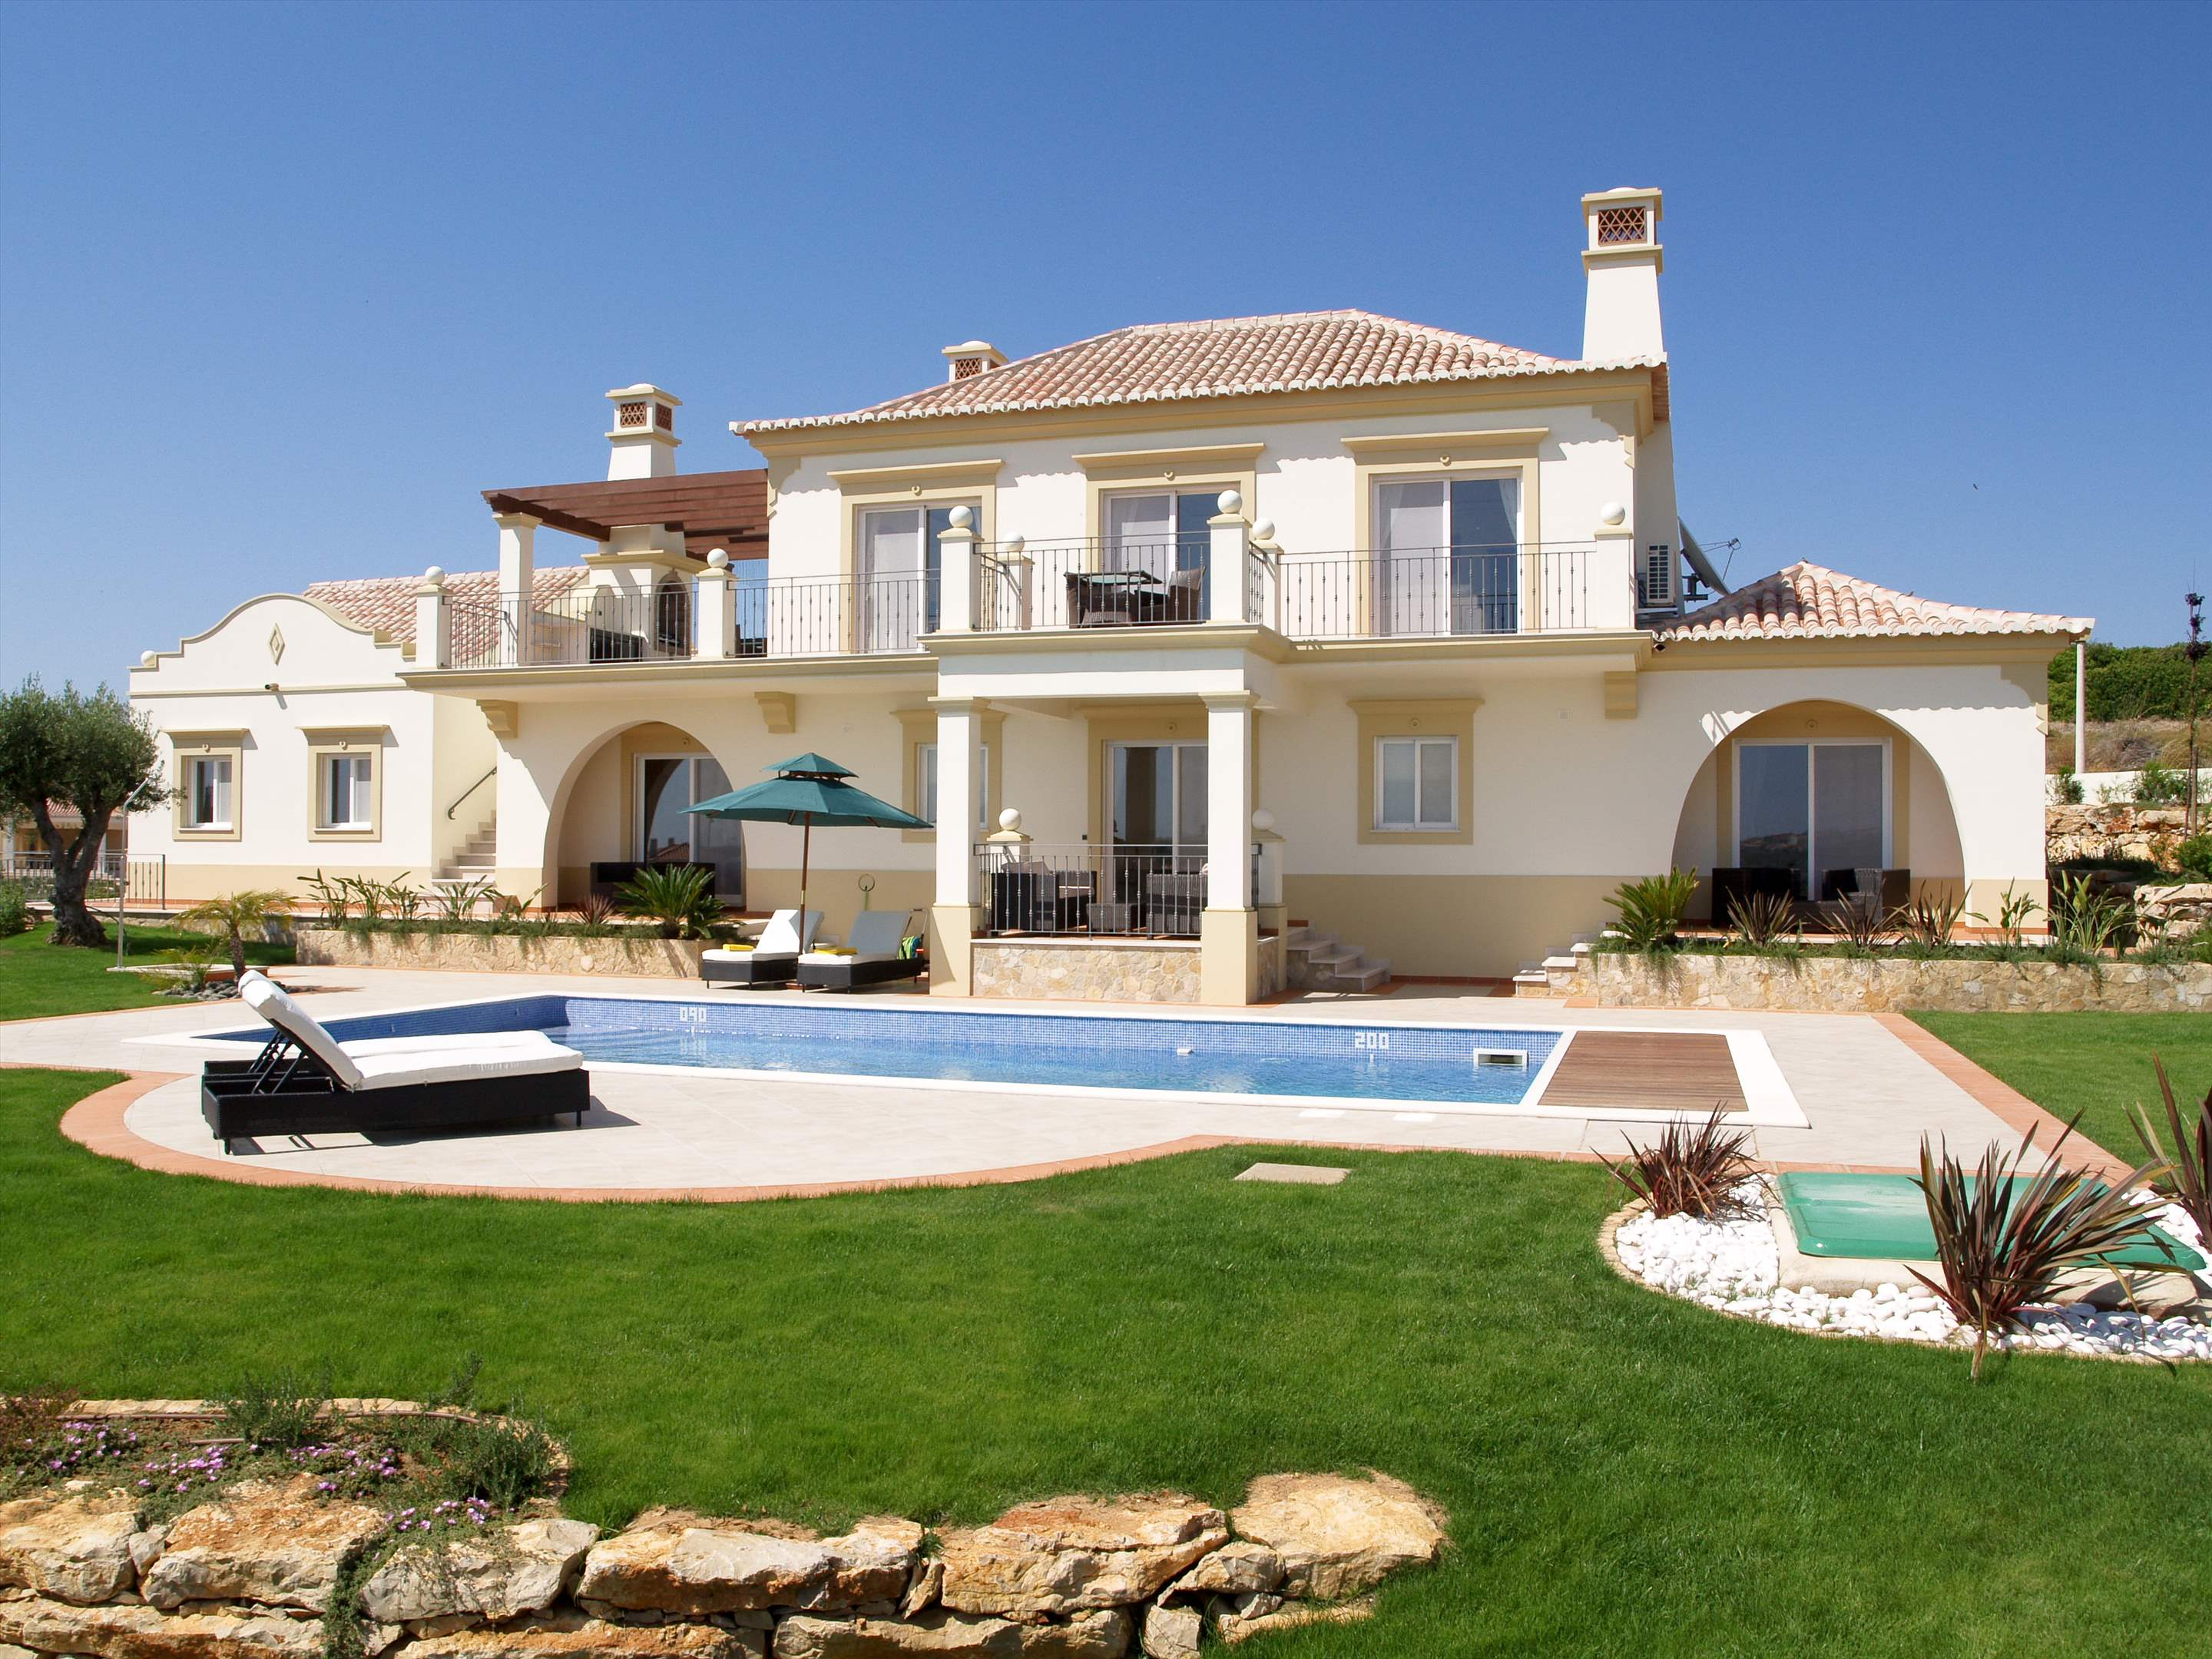 Martinhal Luxury Villa No.44, 3 bedroom villa in Martinhal Sagres, Algarve Photo #1